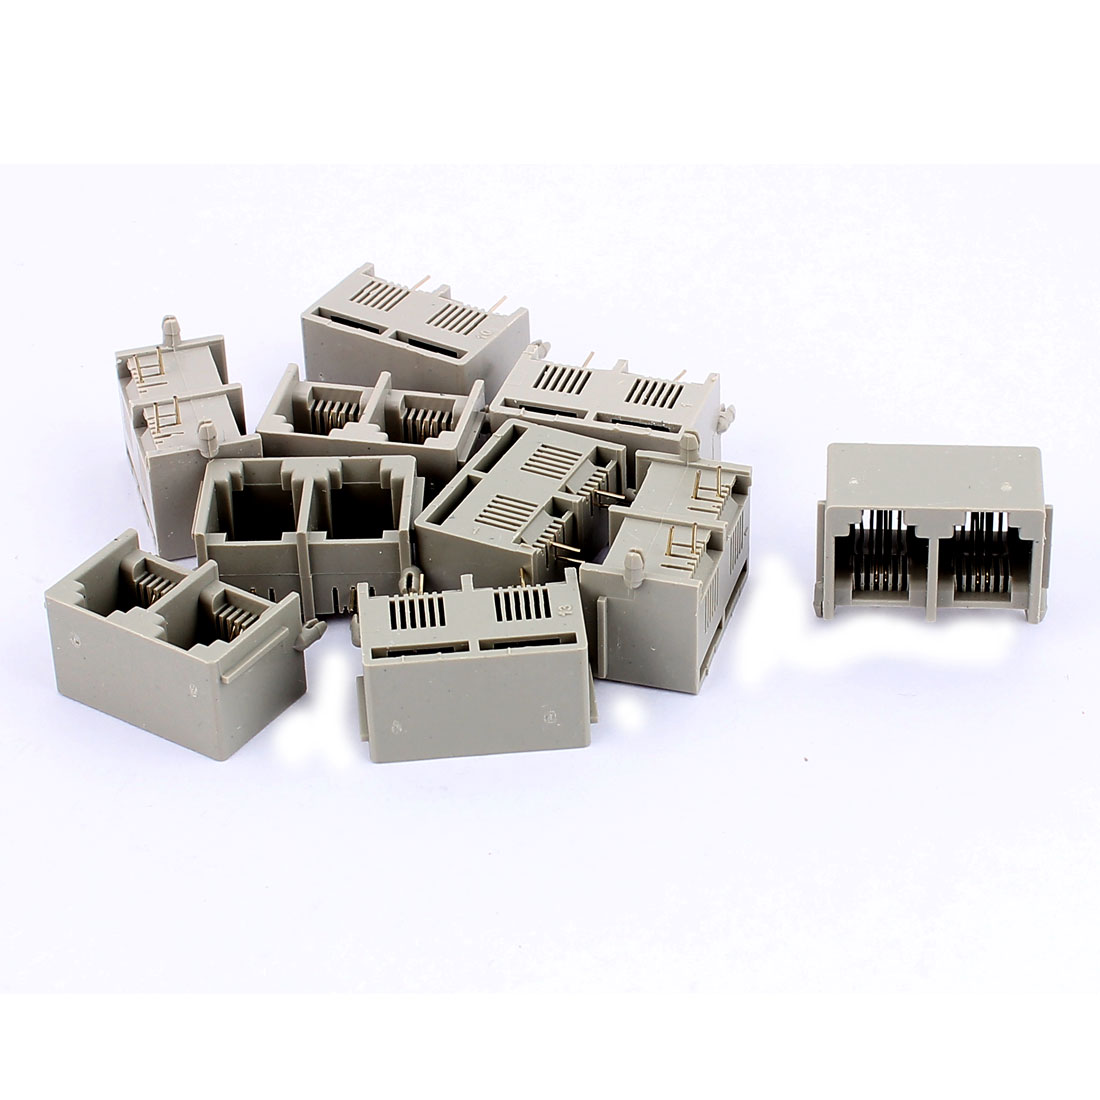 10 Pcs RJ11 6P2C Dual Ports Side Entry Modular Telephone Jack Connector